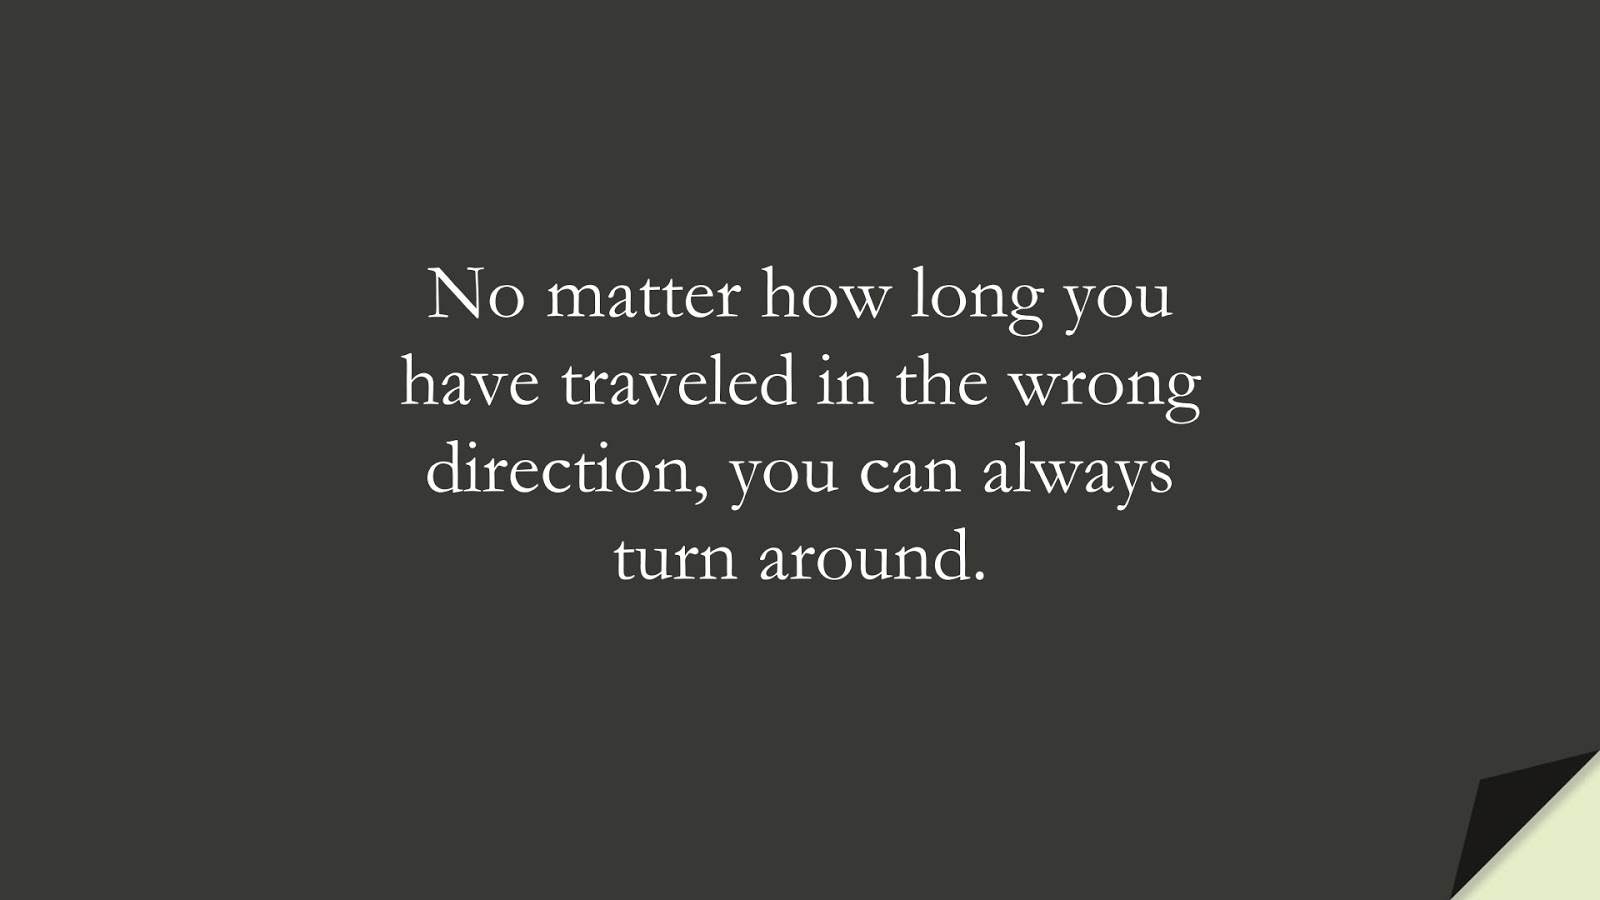 No matter how long you have traveled in the wrong direction, you can always turn around.FALSE